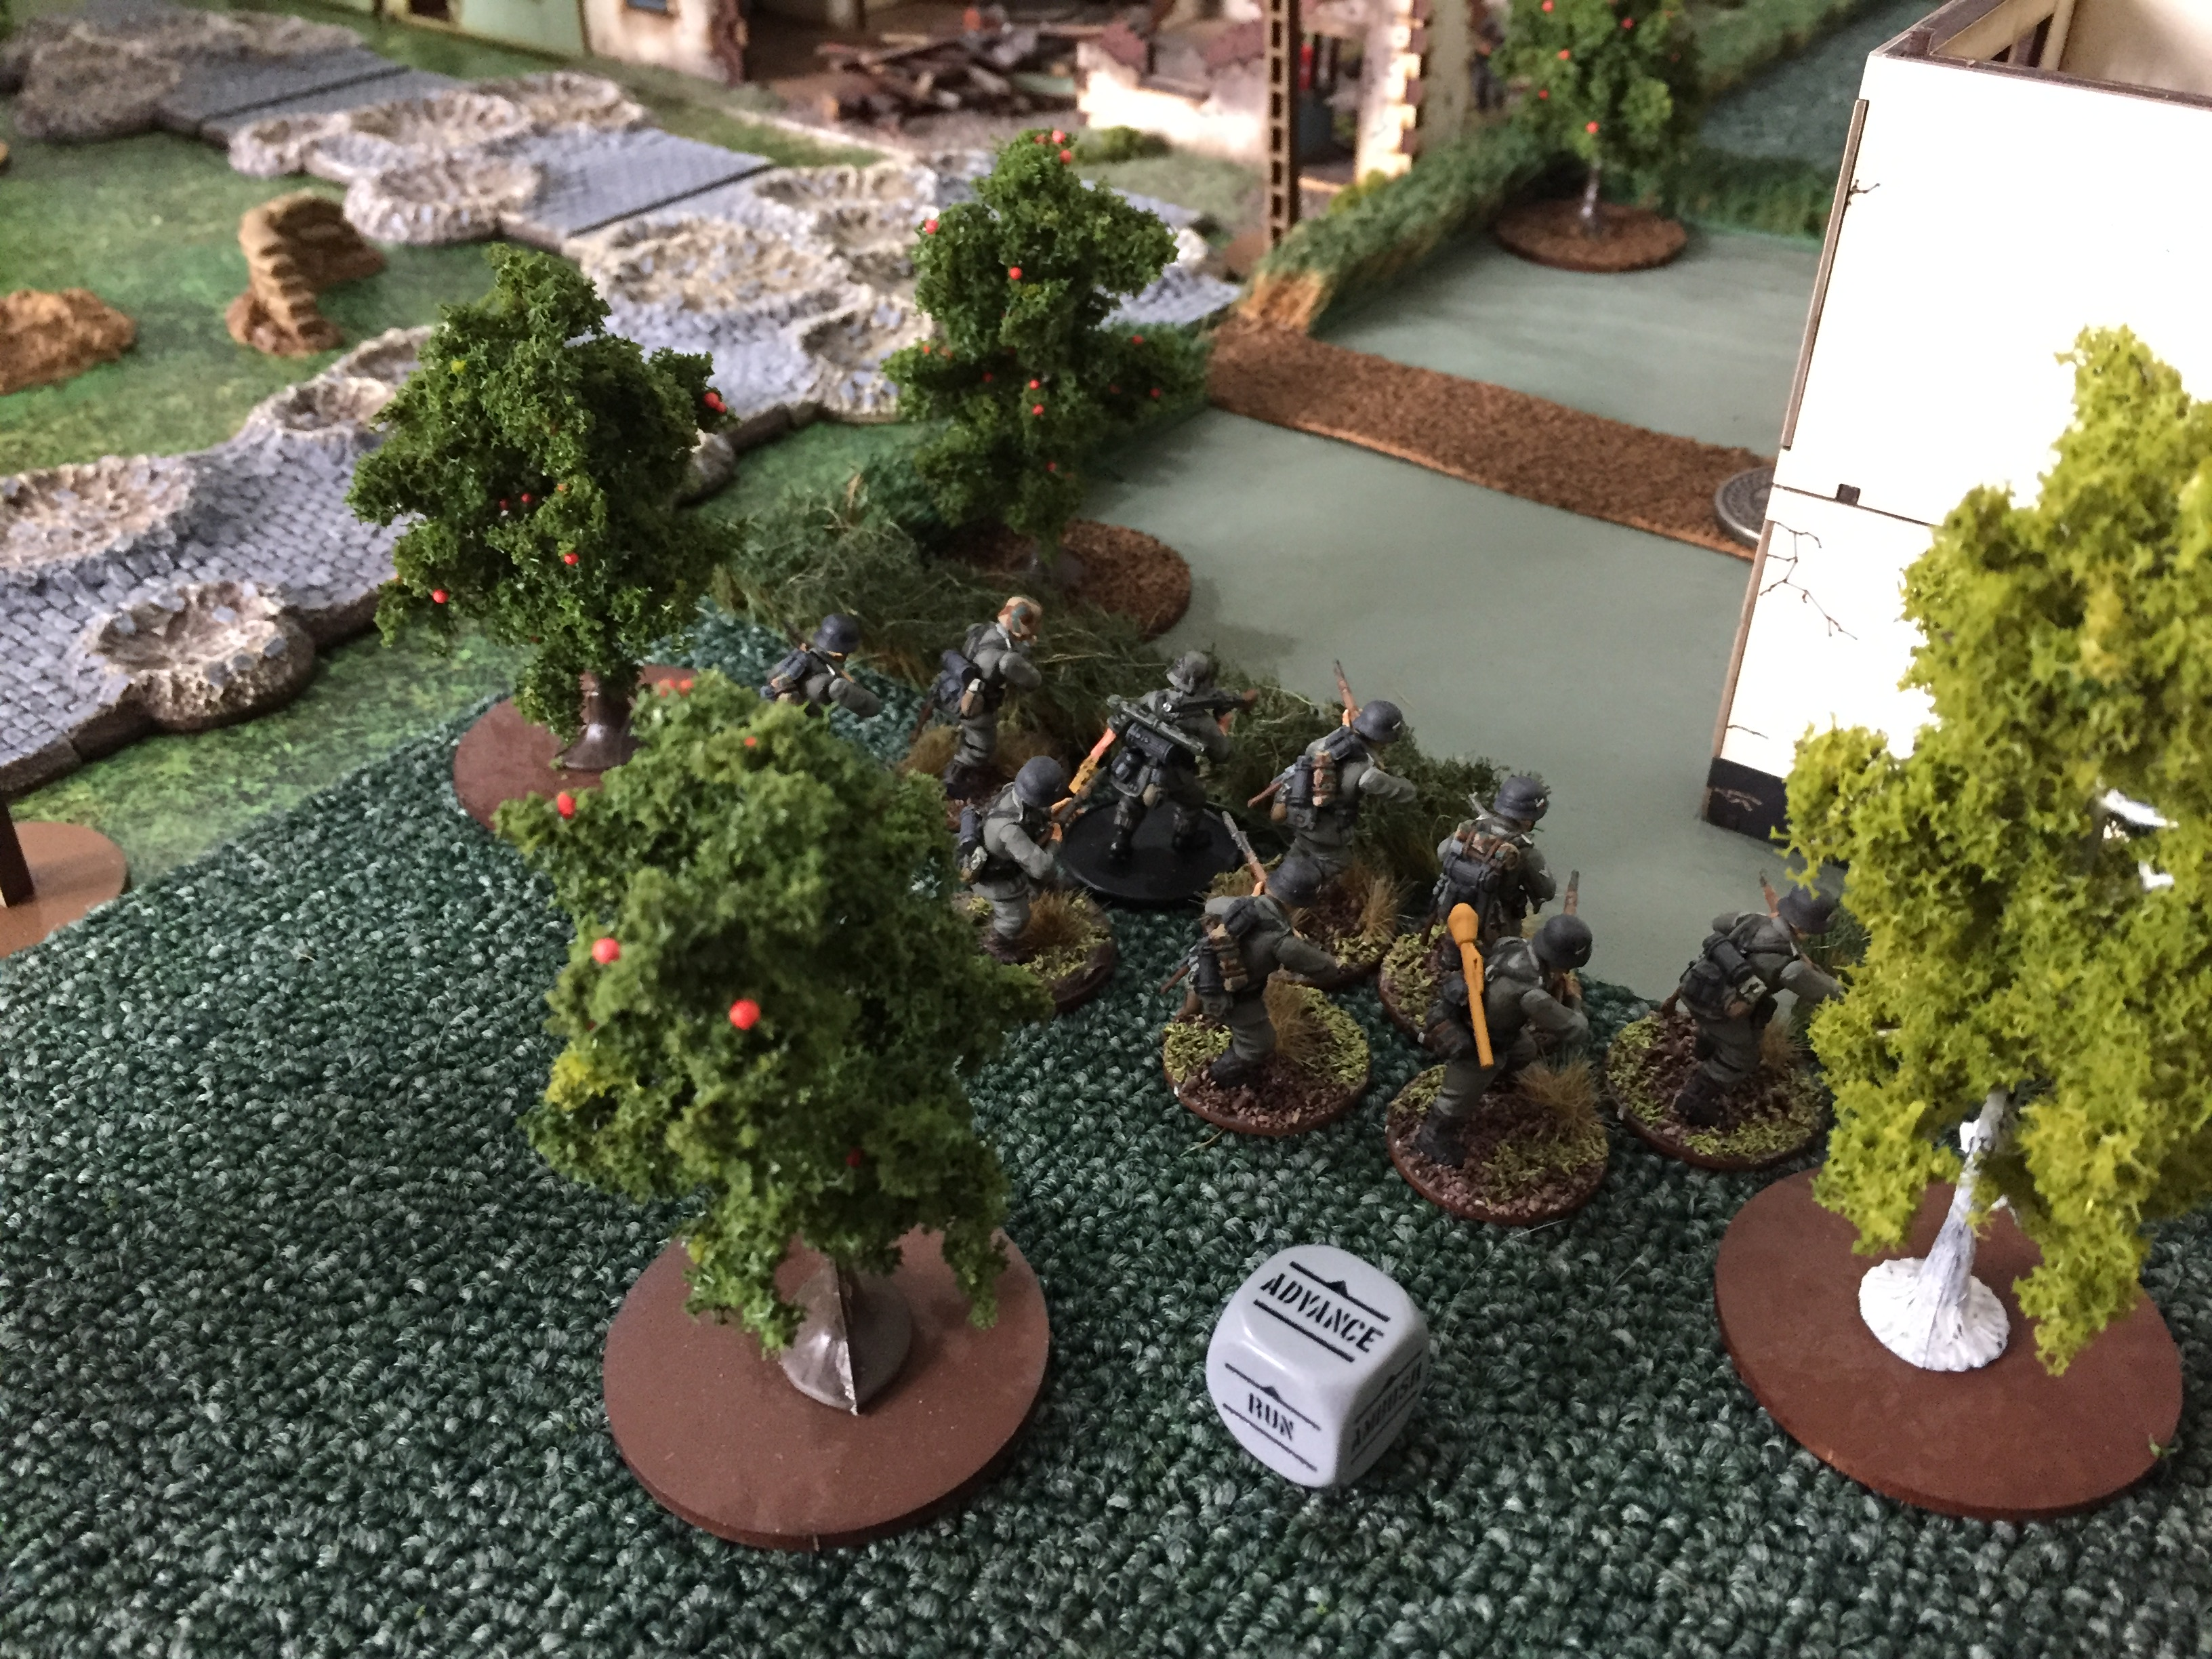 267th Grenadier Regiment versus A Coy, 7th (LI) Para Bn in a fierce infantry engagement